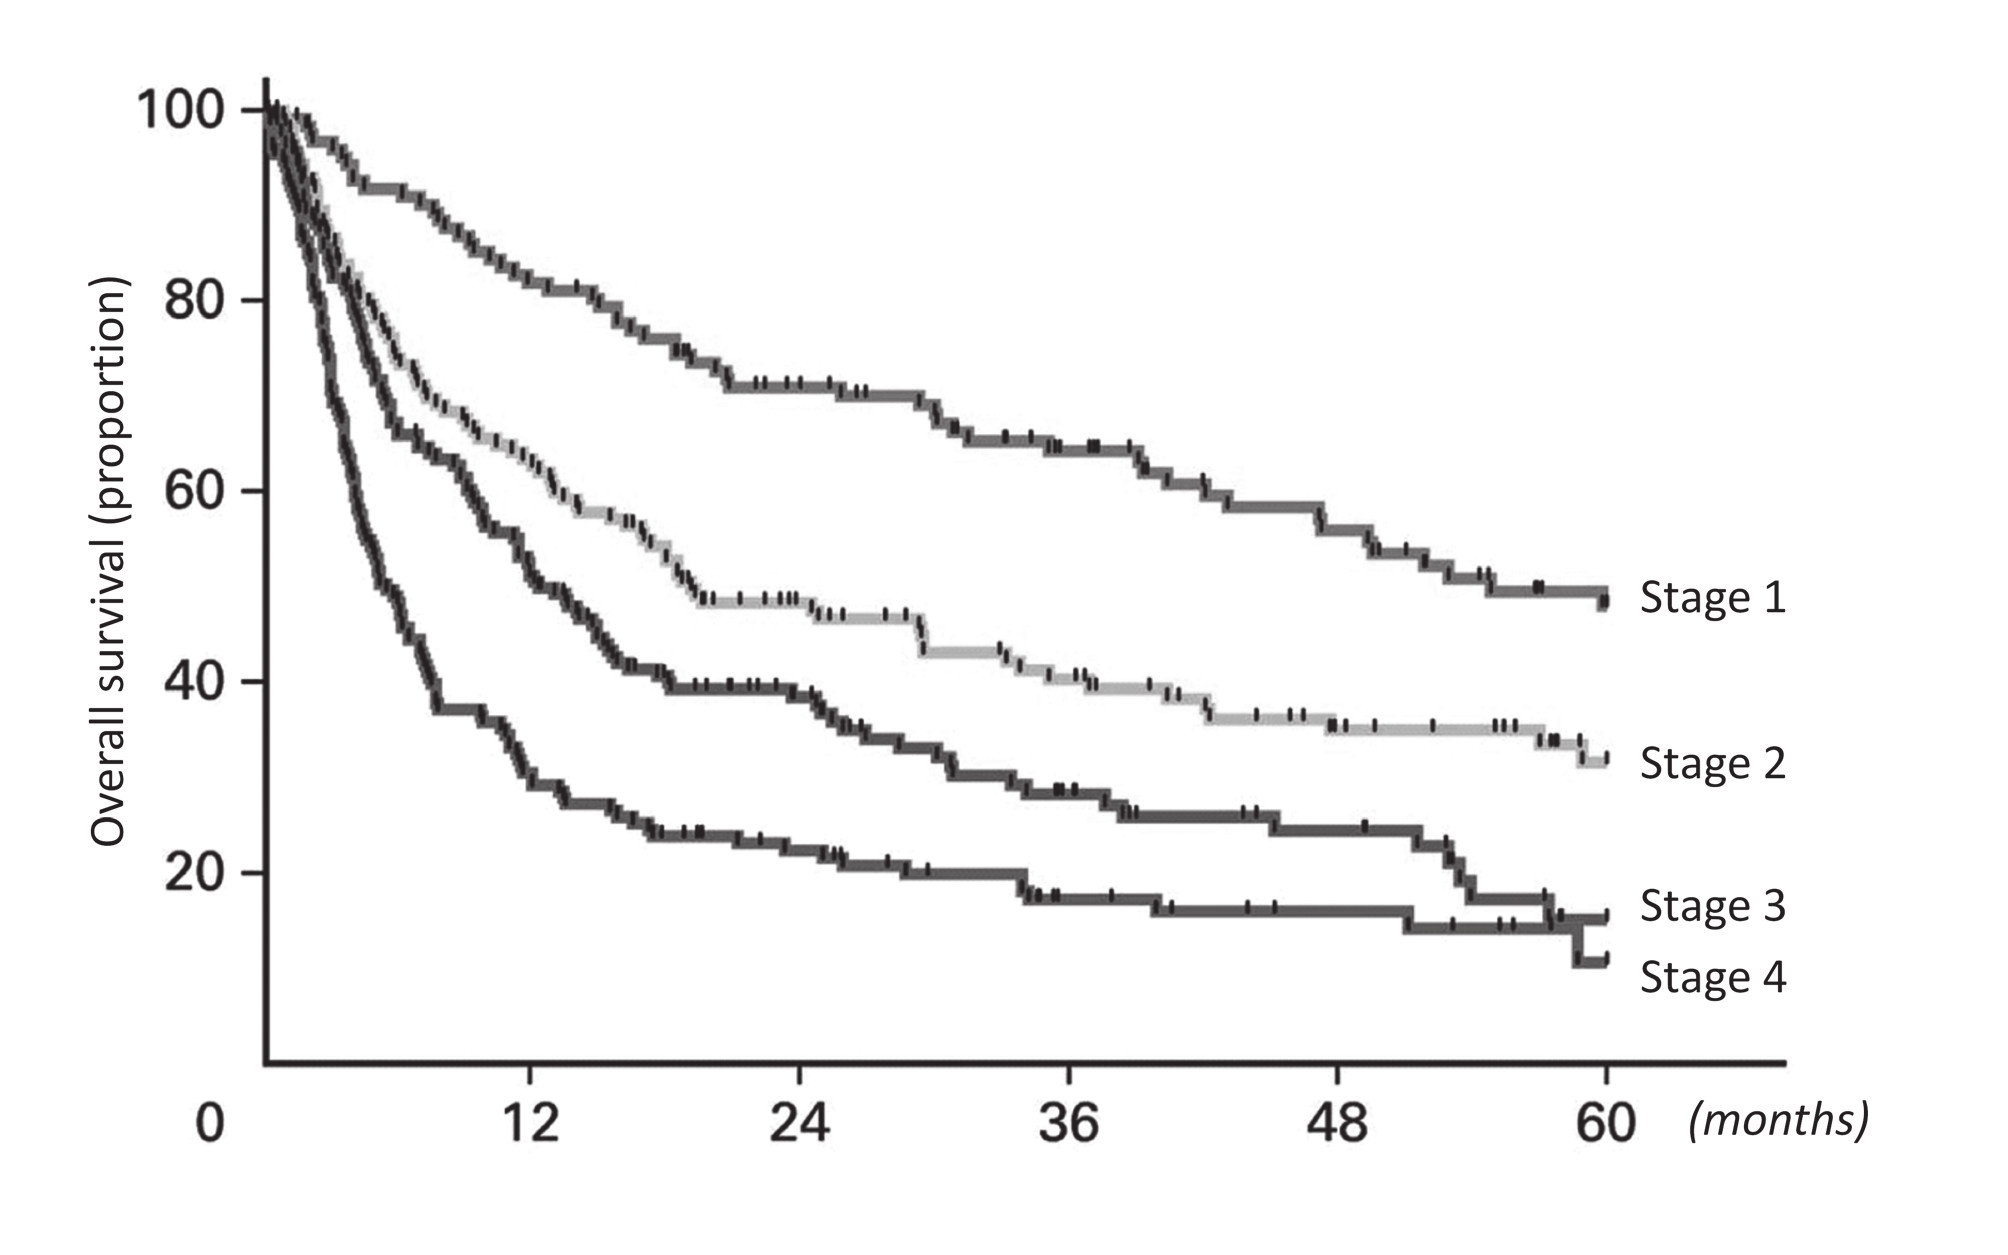 Fig. 2 Kaplan-Meier curves fo overall survival from diagnosis among the subgroup of 583 patients based on the revised Prognostic Mayo Clinic staging systém for systemic AL amyloidosis (30)